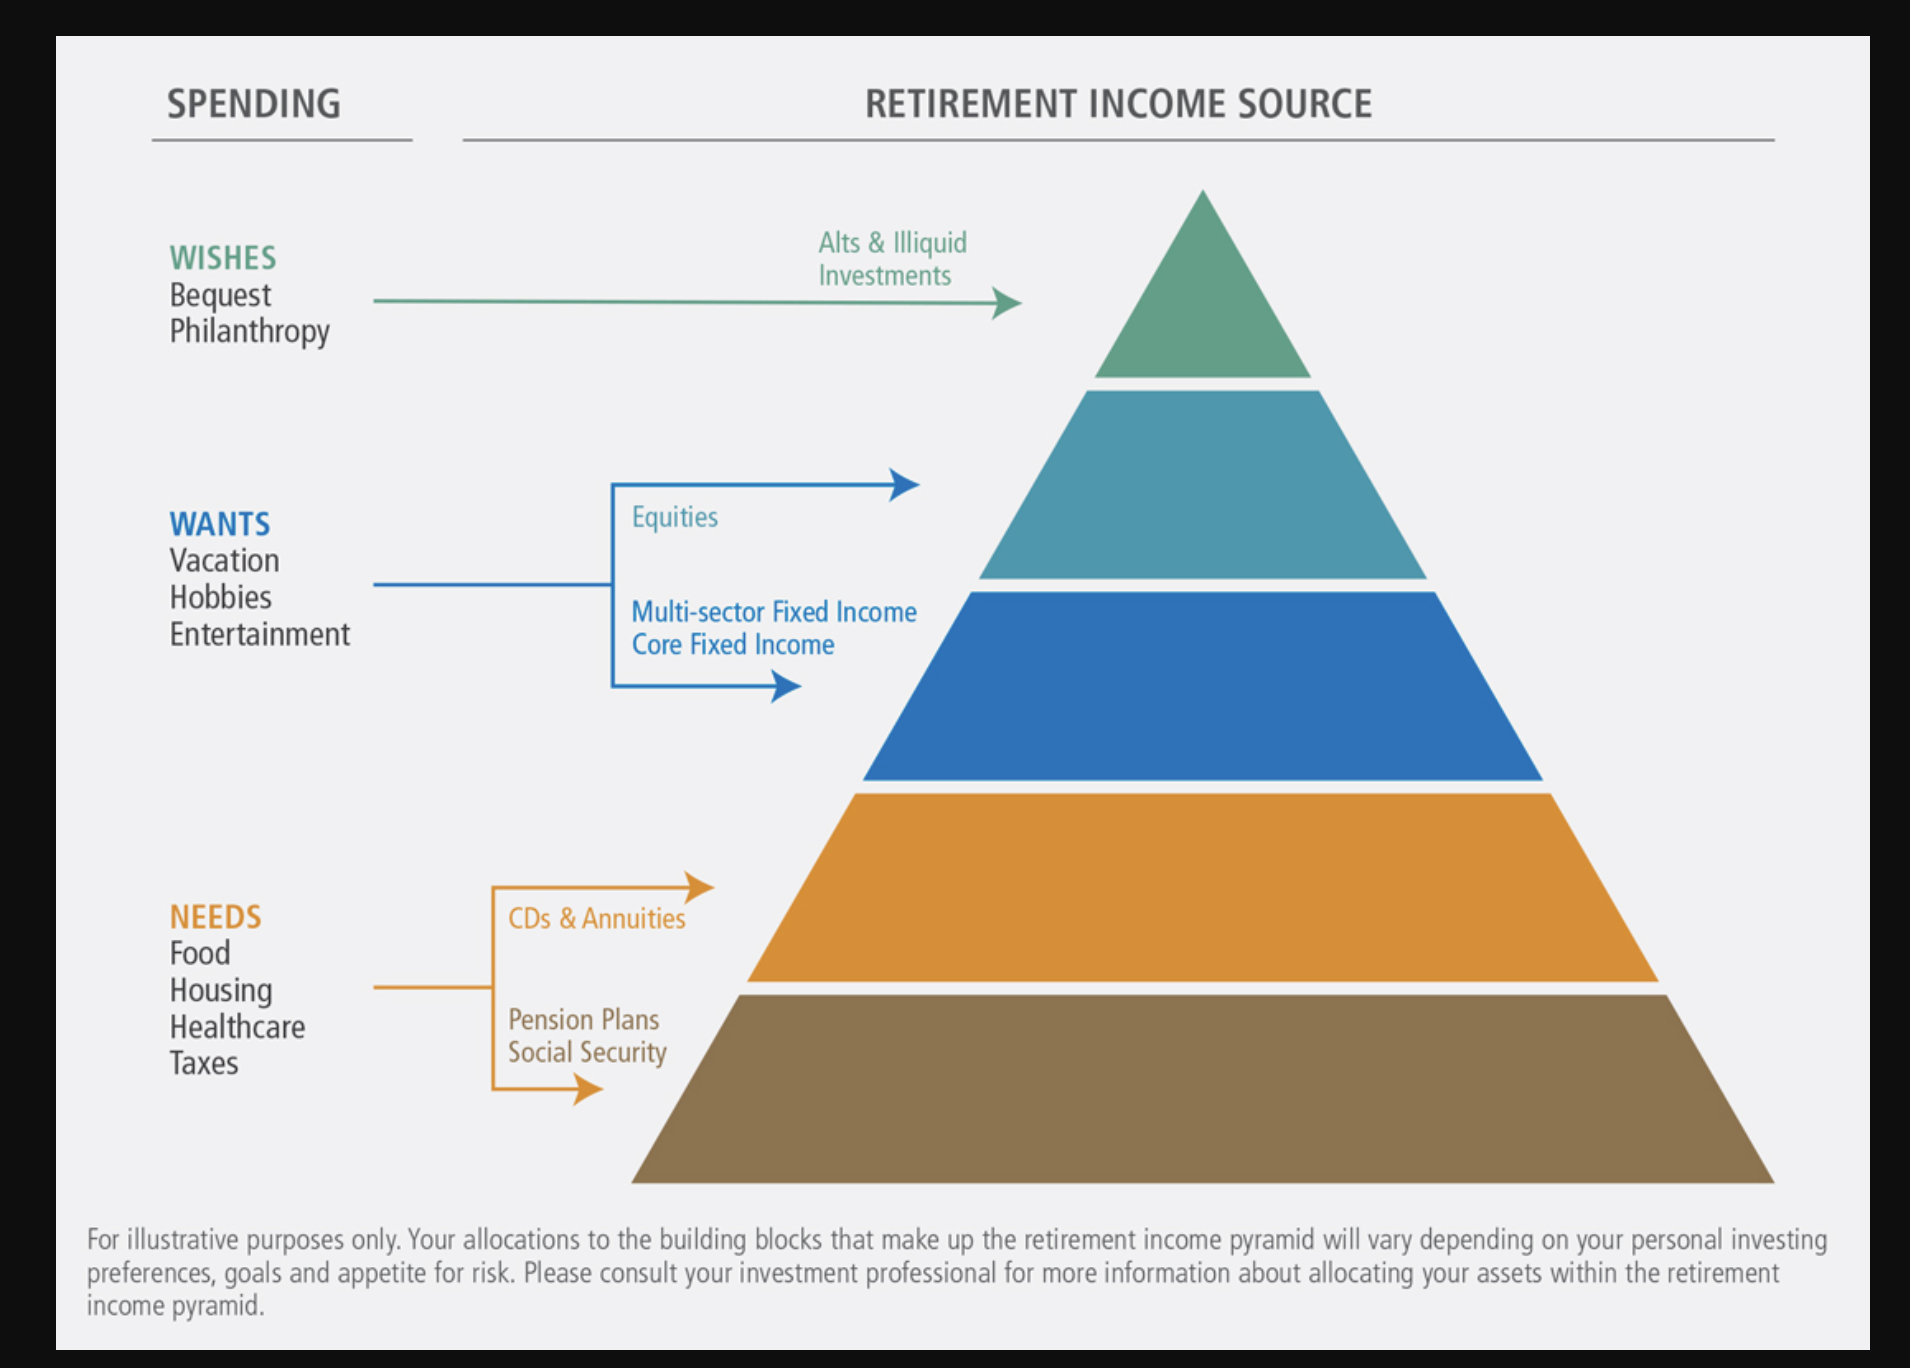 Building the Retirement Income Pyramid